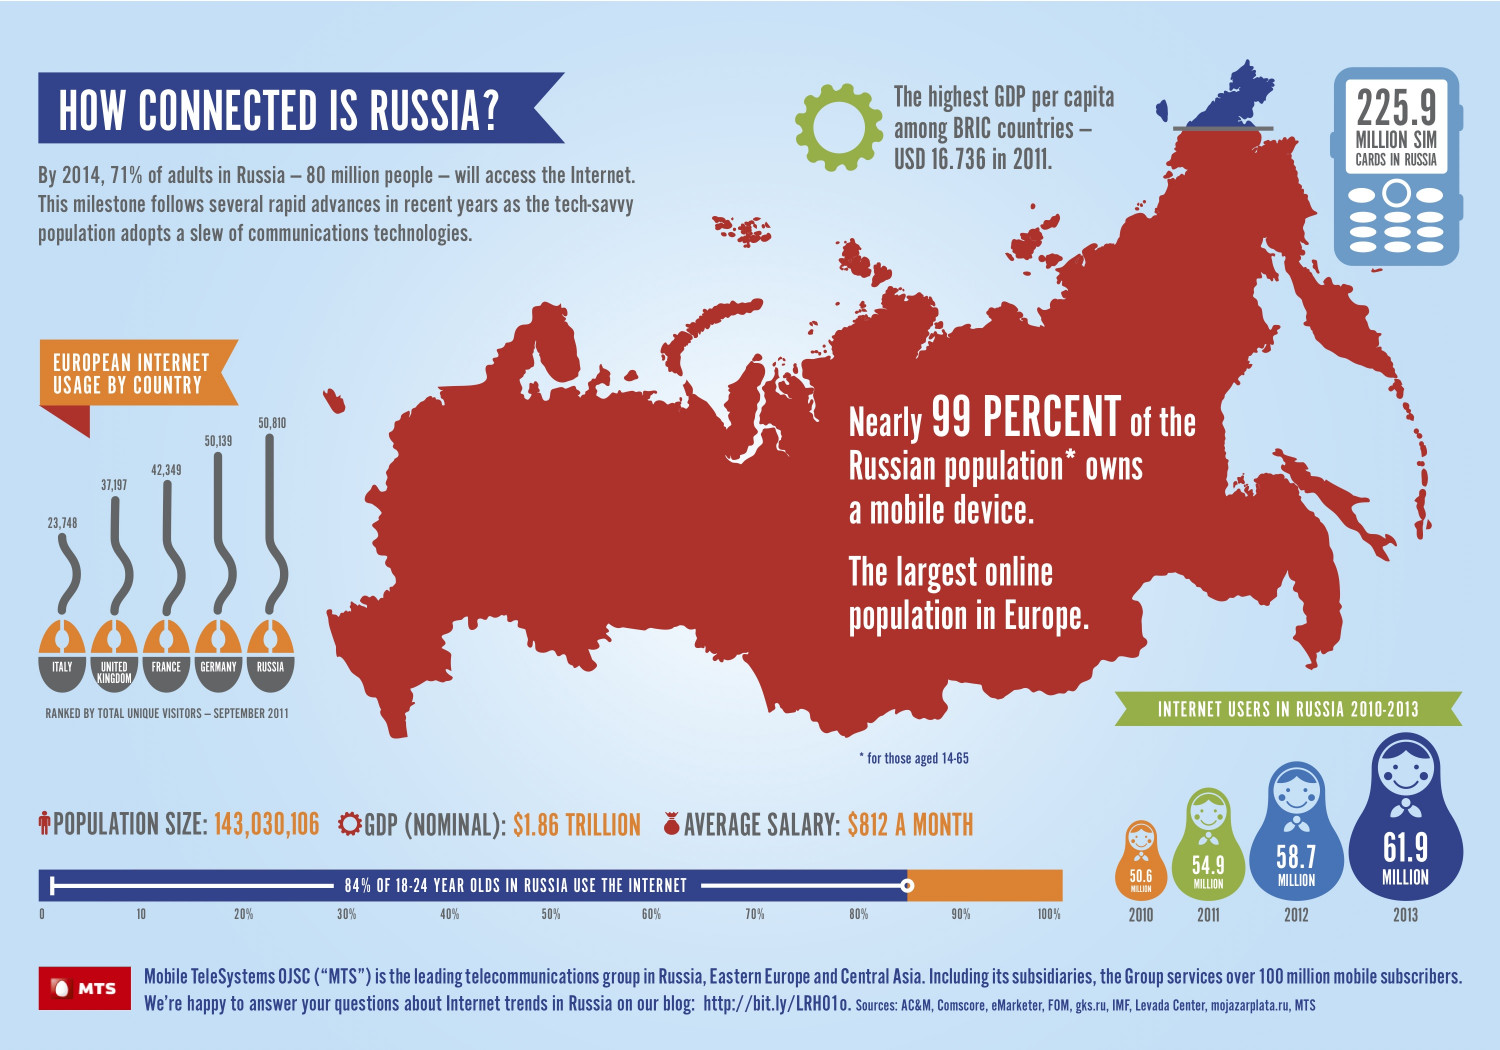 Connectivity in Russia Infographic